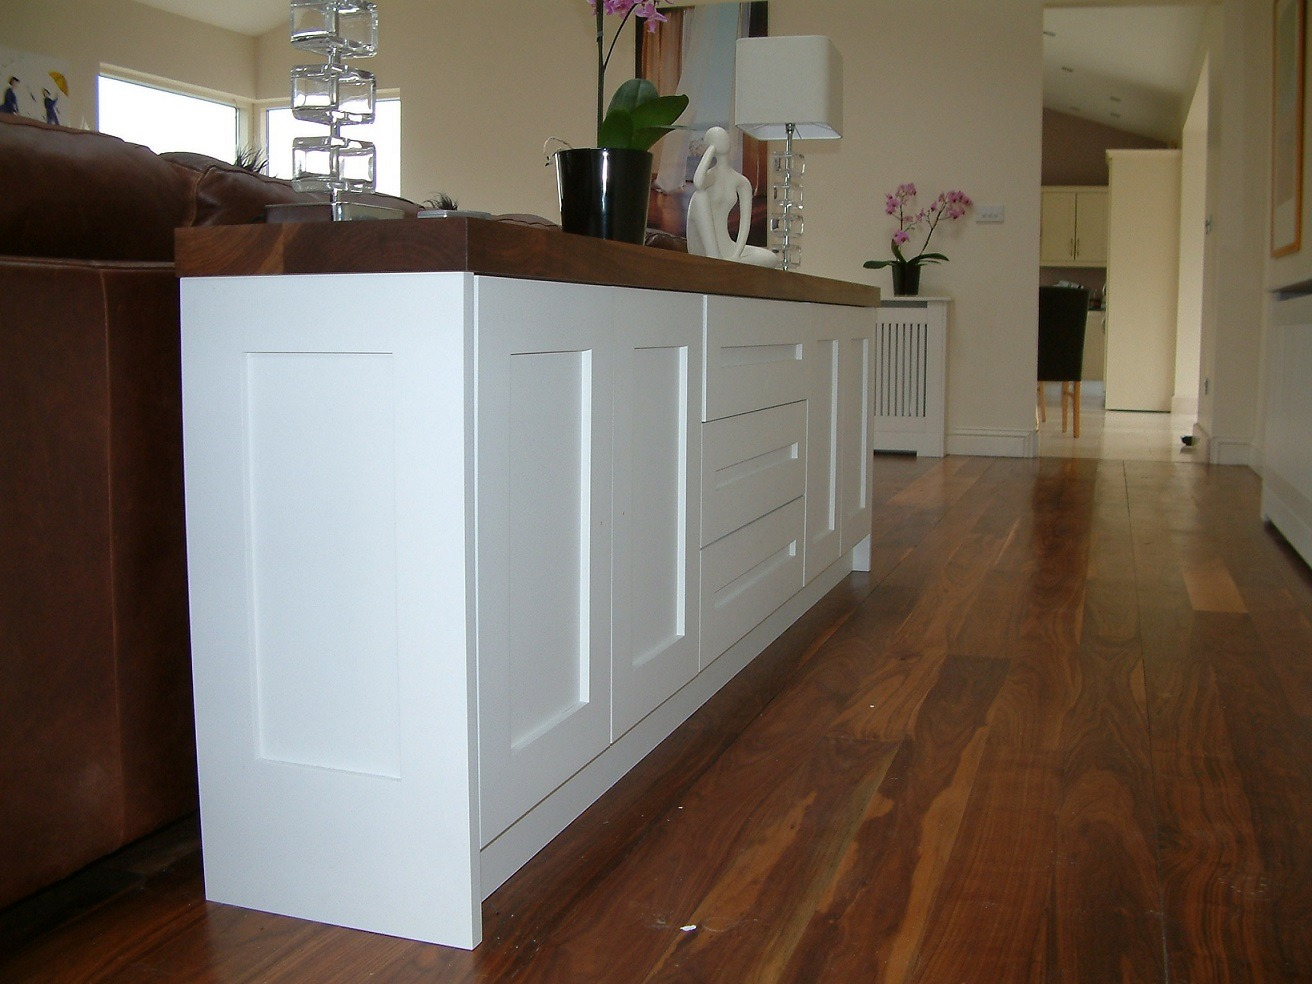 Hand painting living room units by Impressions Painting and Decorating in Dublin